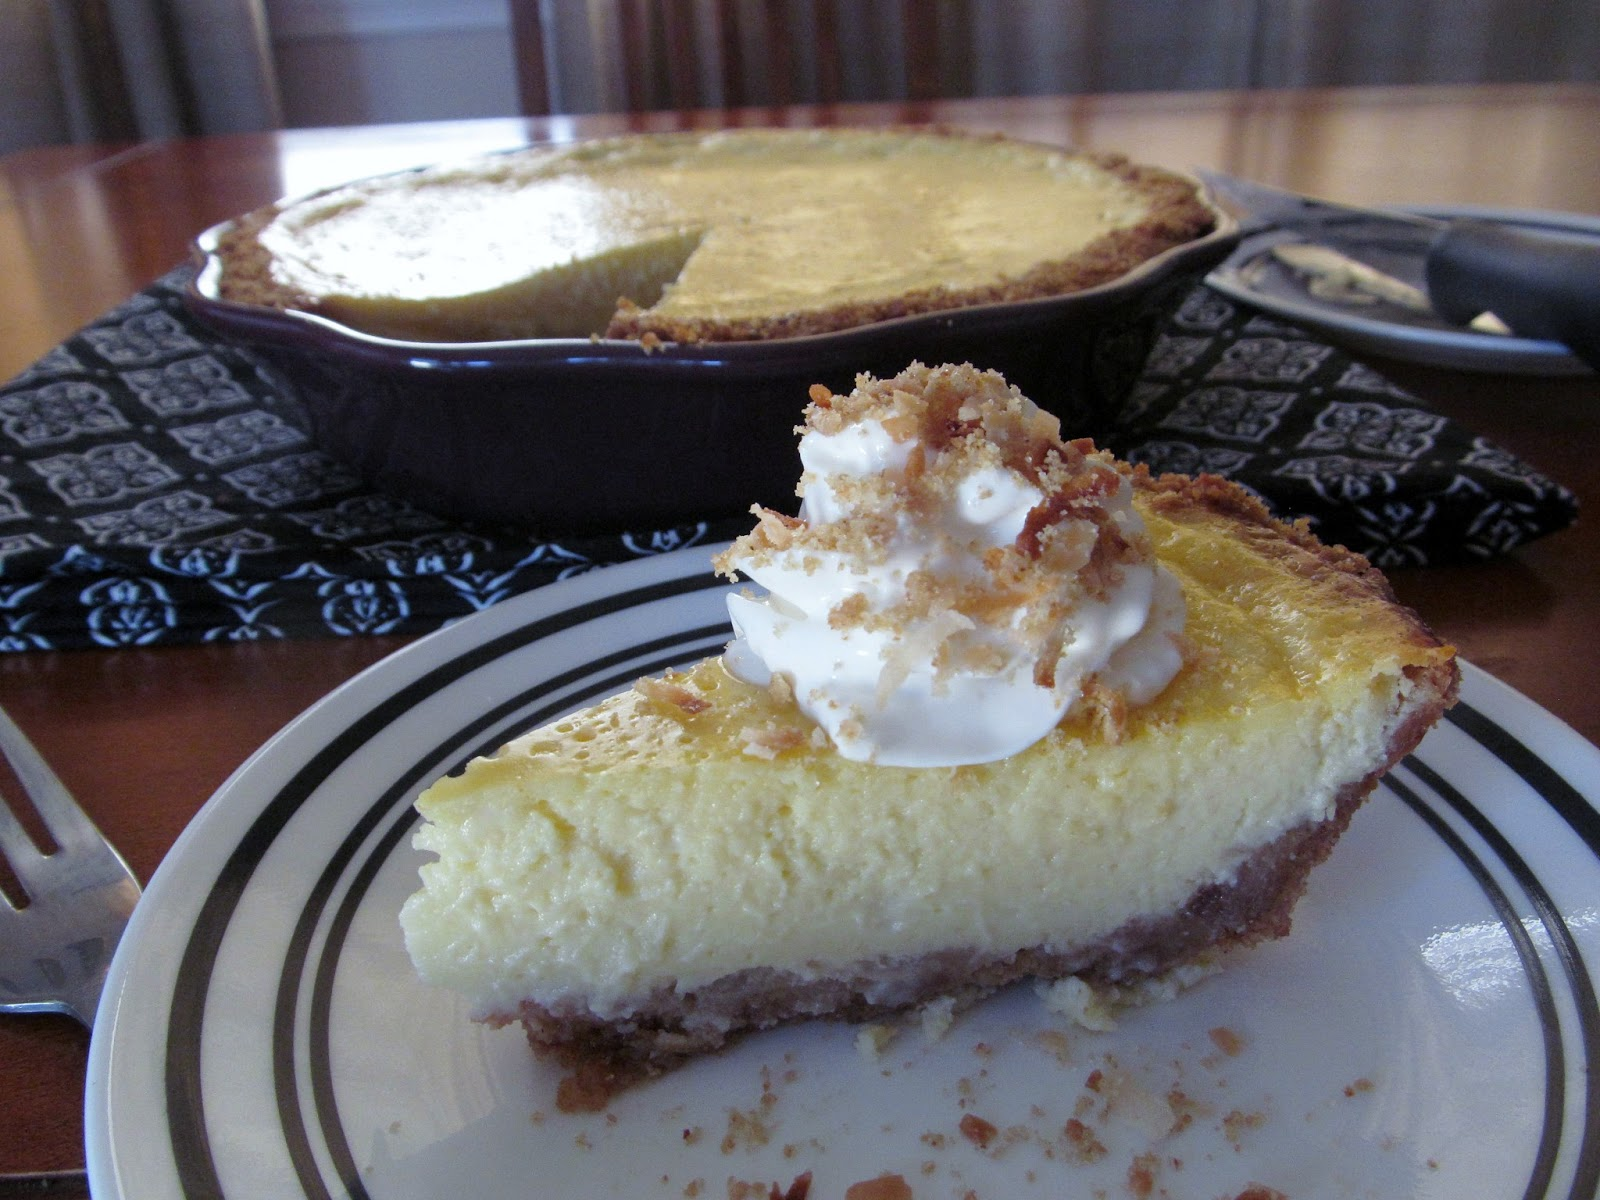 Crafty Cook: Coconut Key Lime Pie with Toasted Coconut Crust